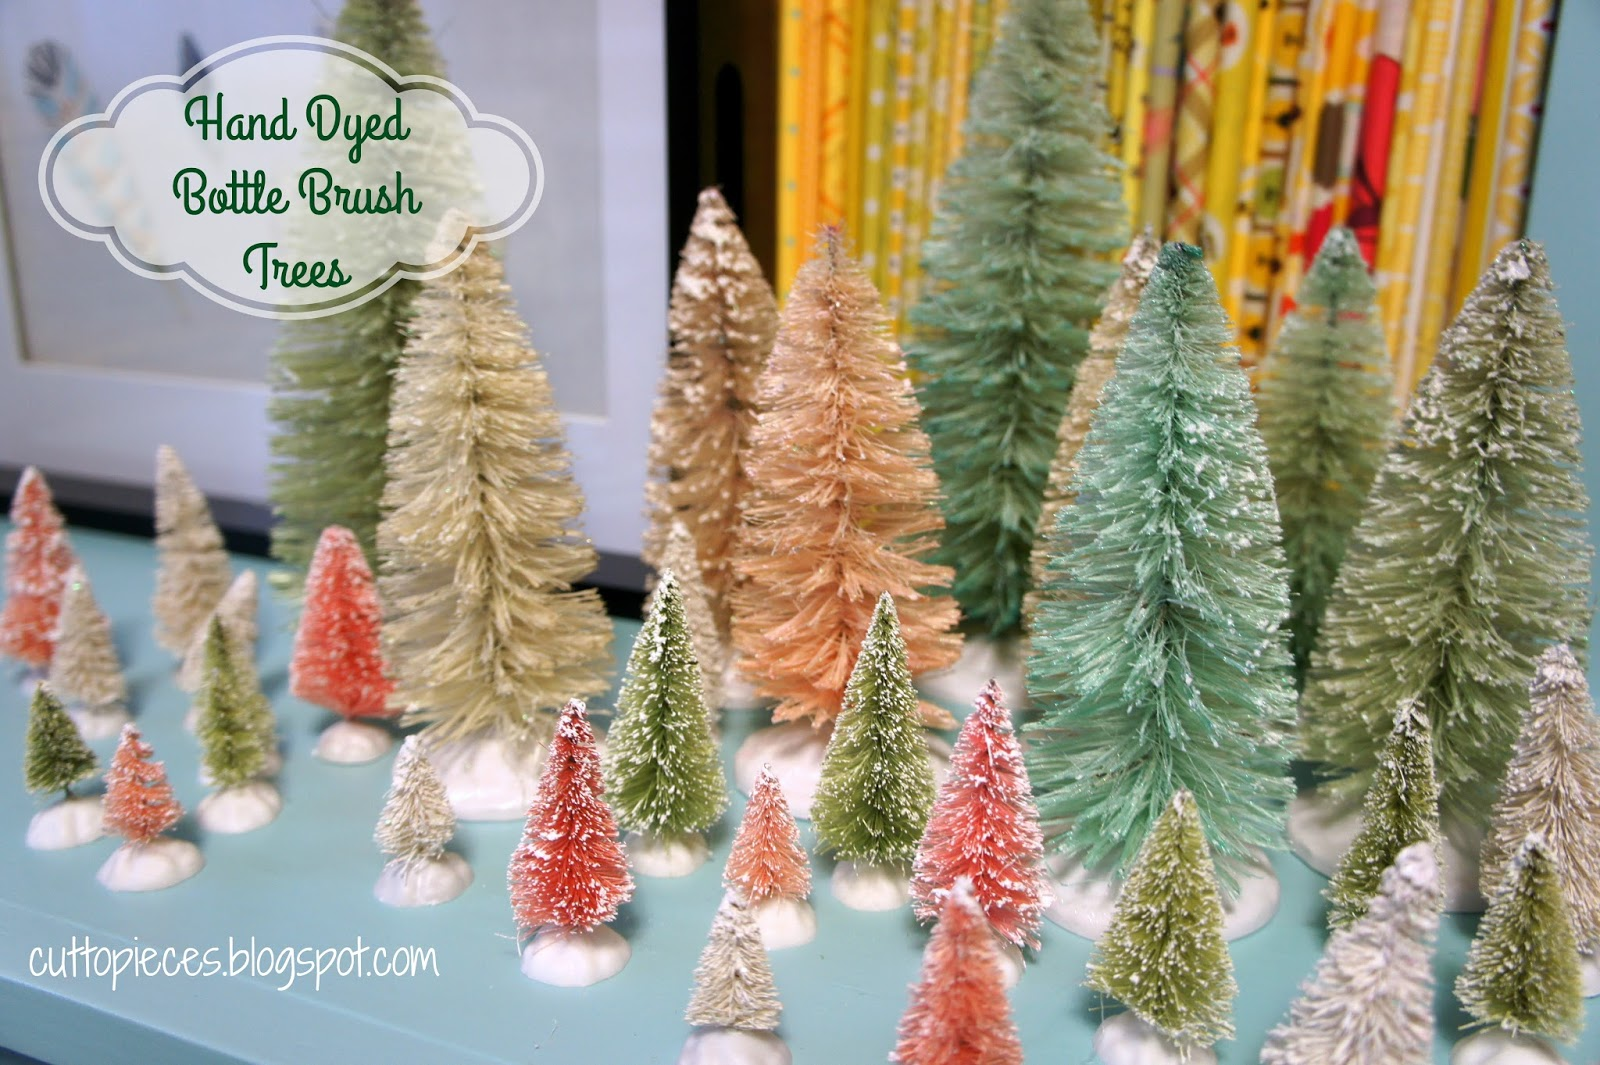 Bristle brush ornaments - So I Finally Decided To Join In On The Bristle Brush Tree Bandwagon I Bought Some Last Year With The Intention Of Attempting To Hand Dye Them But I